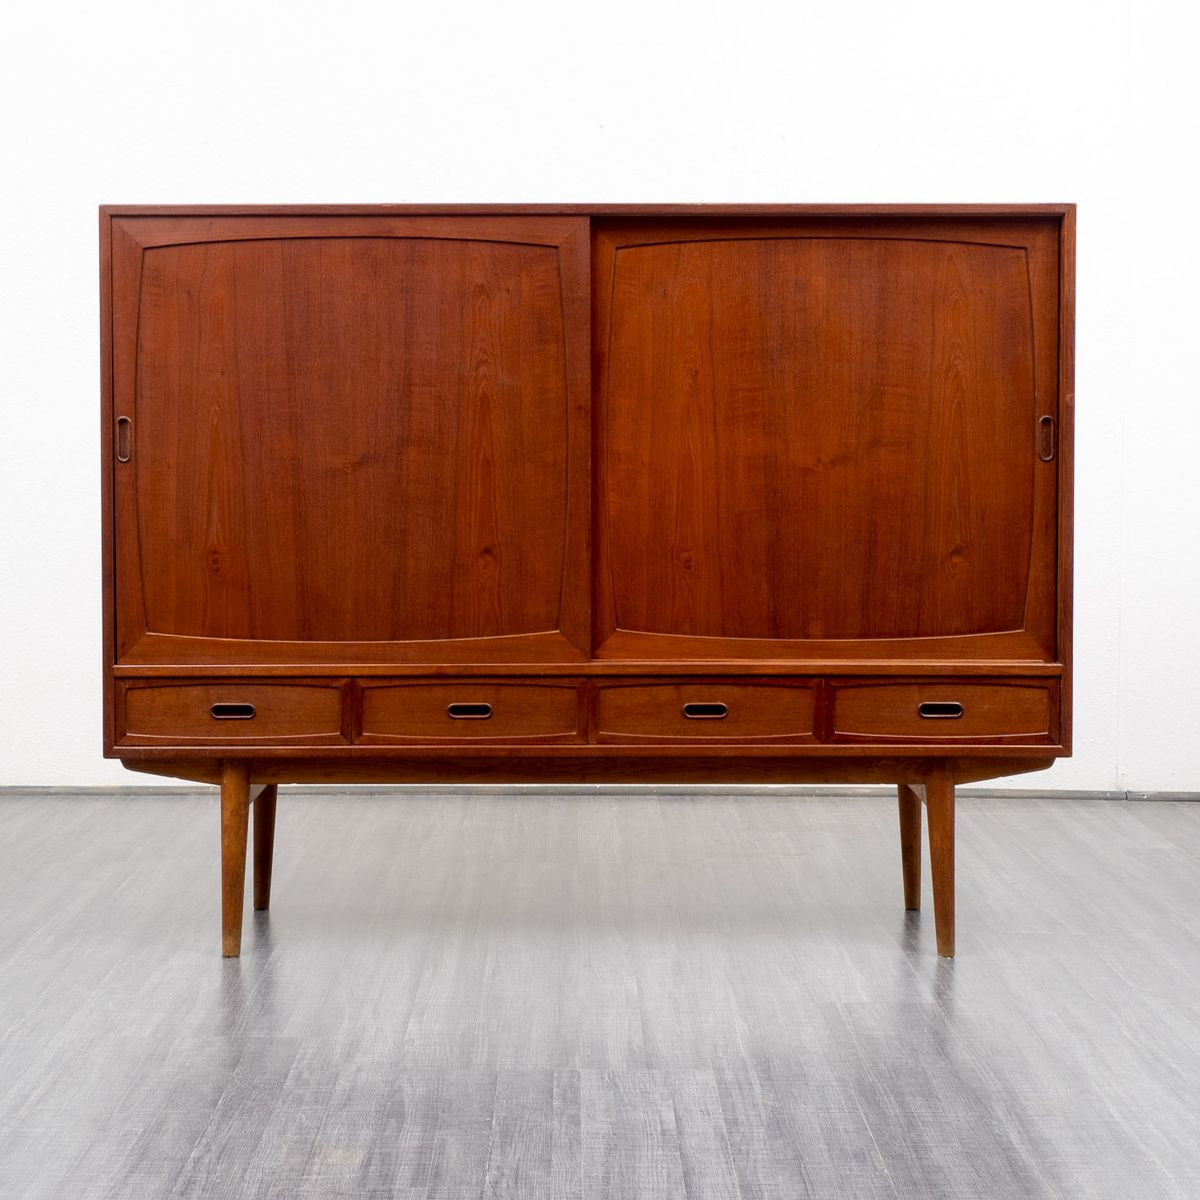 Mid century scandinavian teak sideboard 1960s for sale at for Sideboard scandi